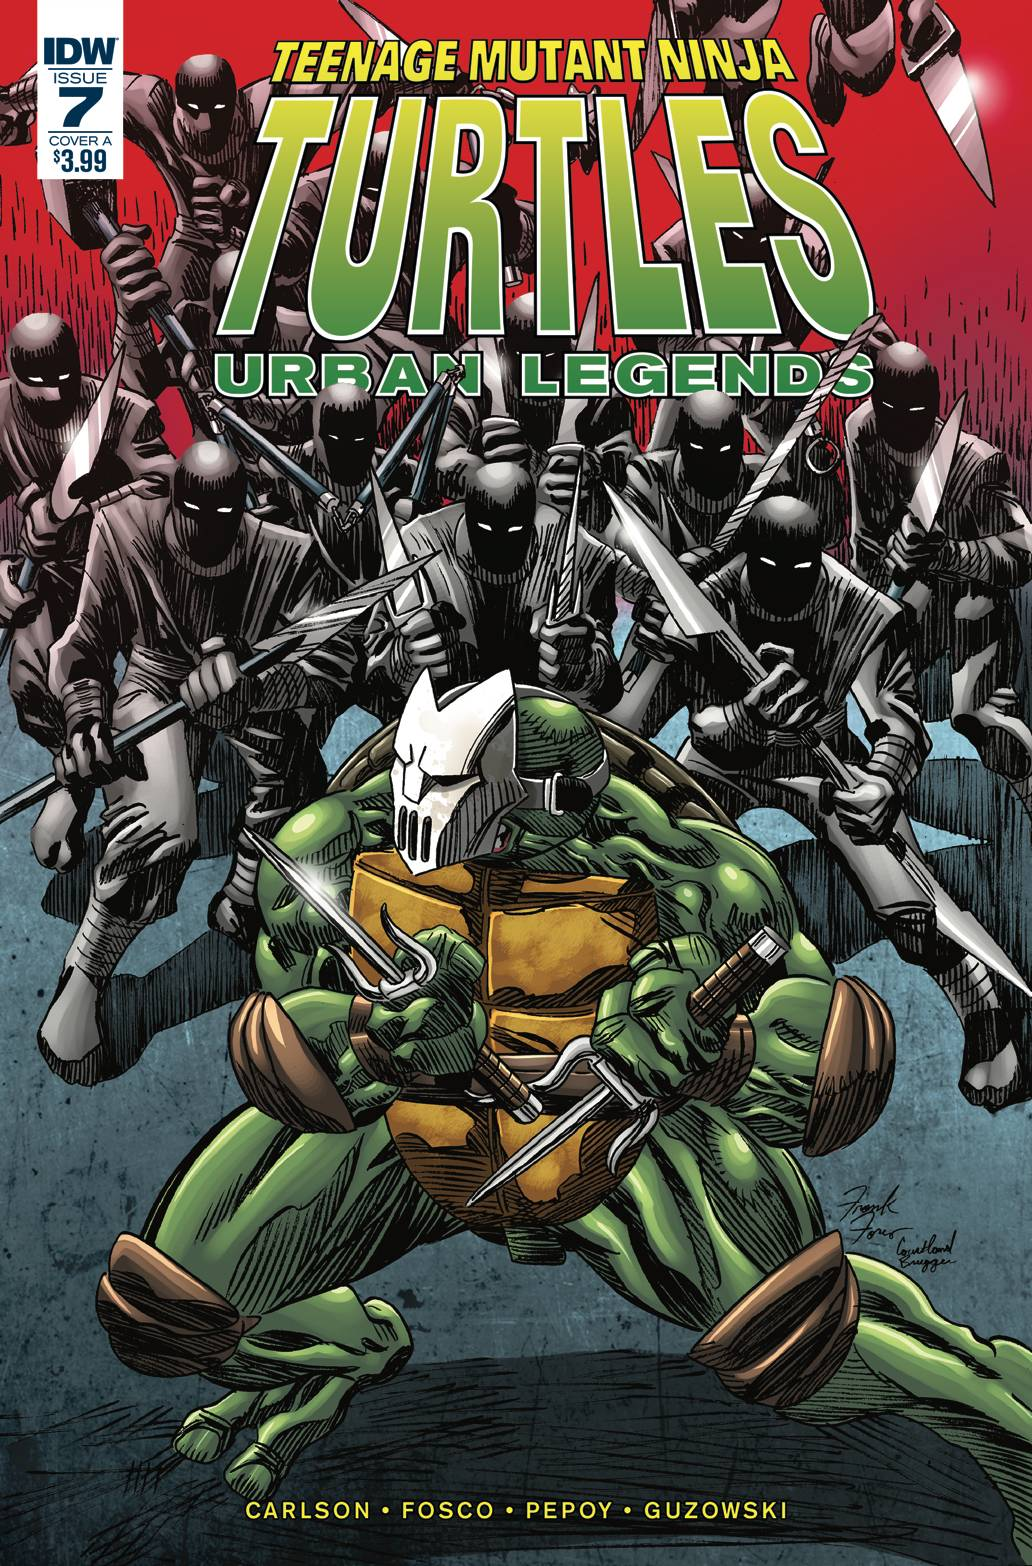 Teenage Mutant Ninja Turtles: Urban Legends #07